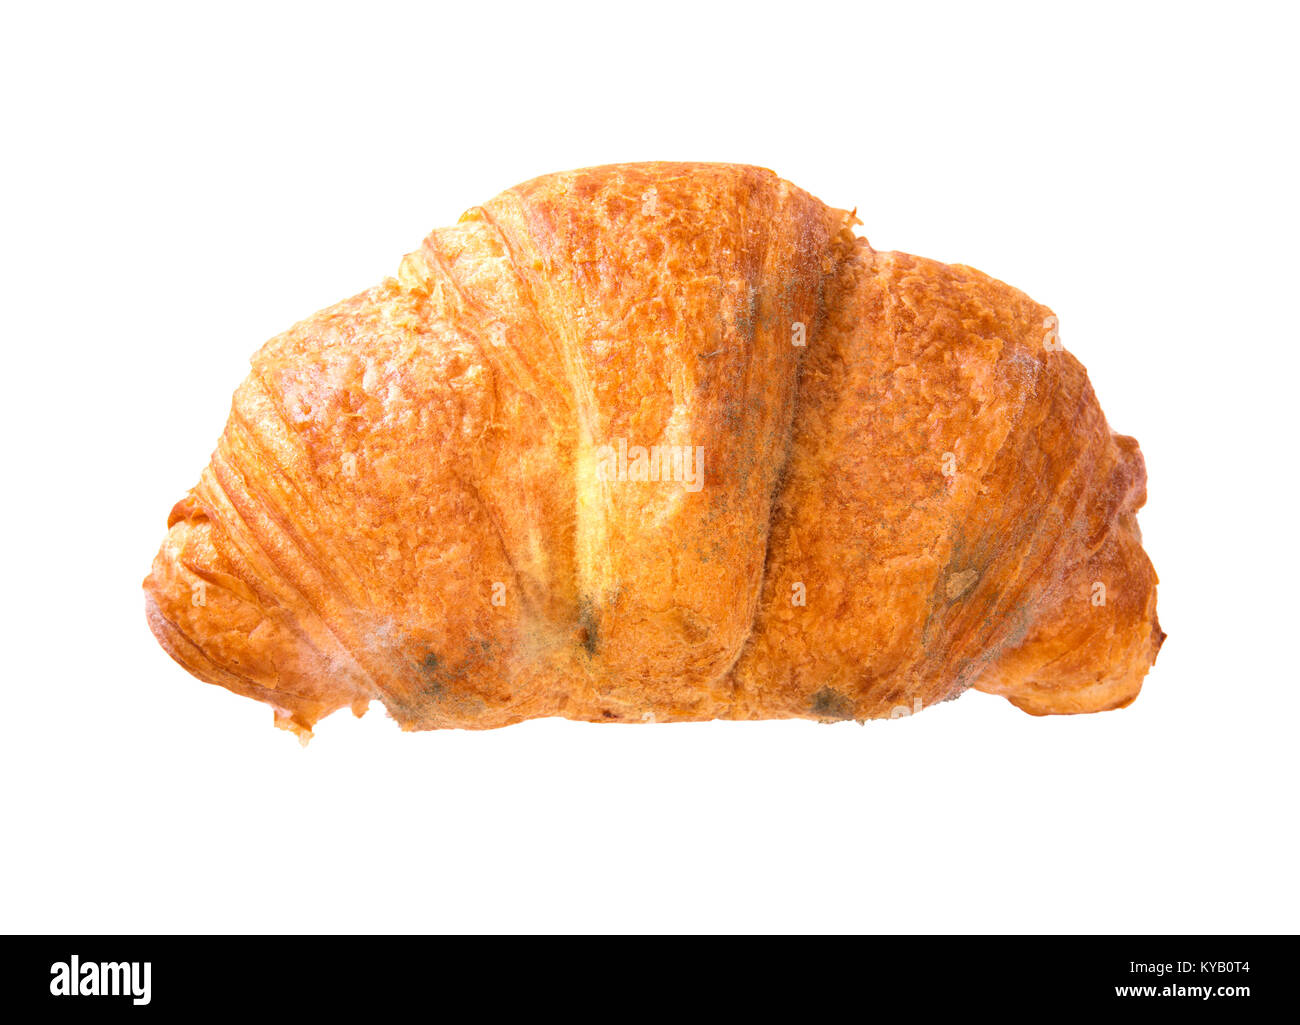 Moldy Croissant on a white background - Stock Image